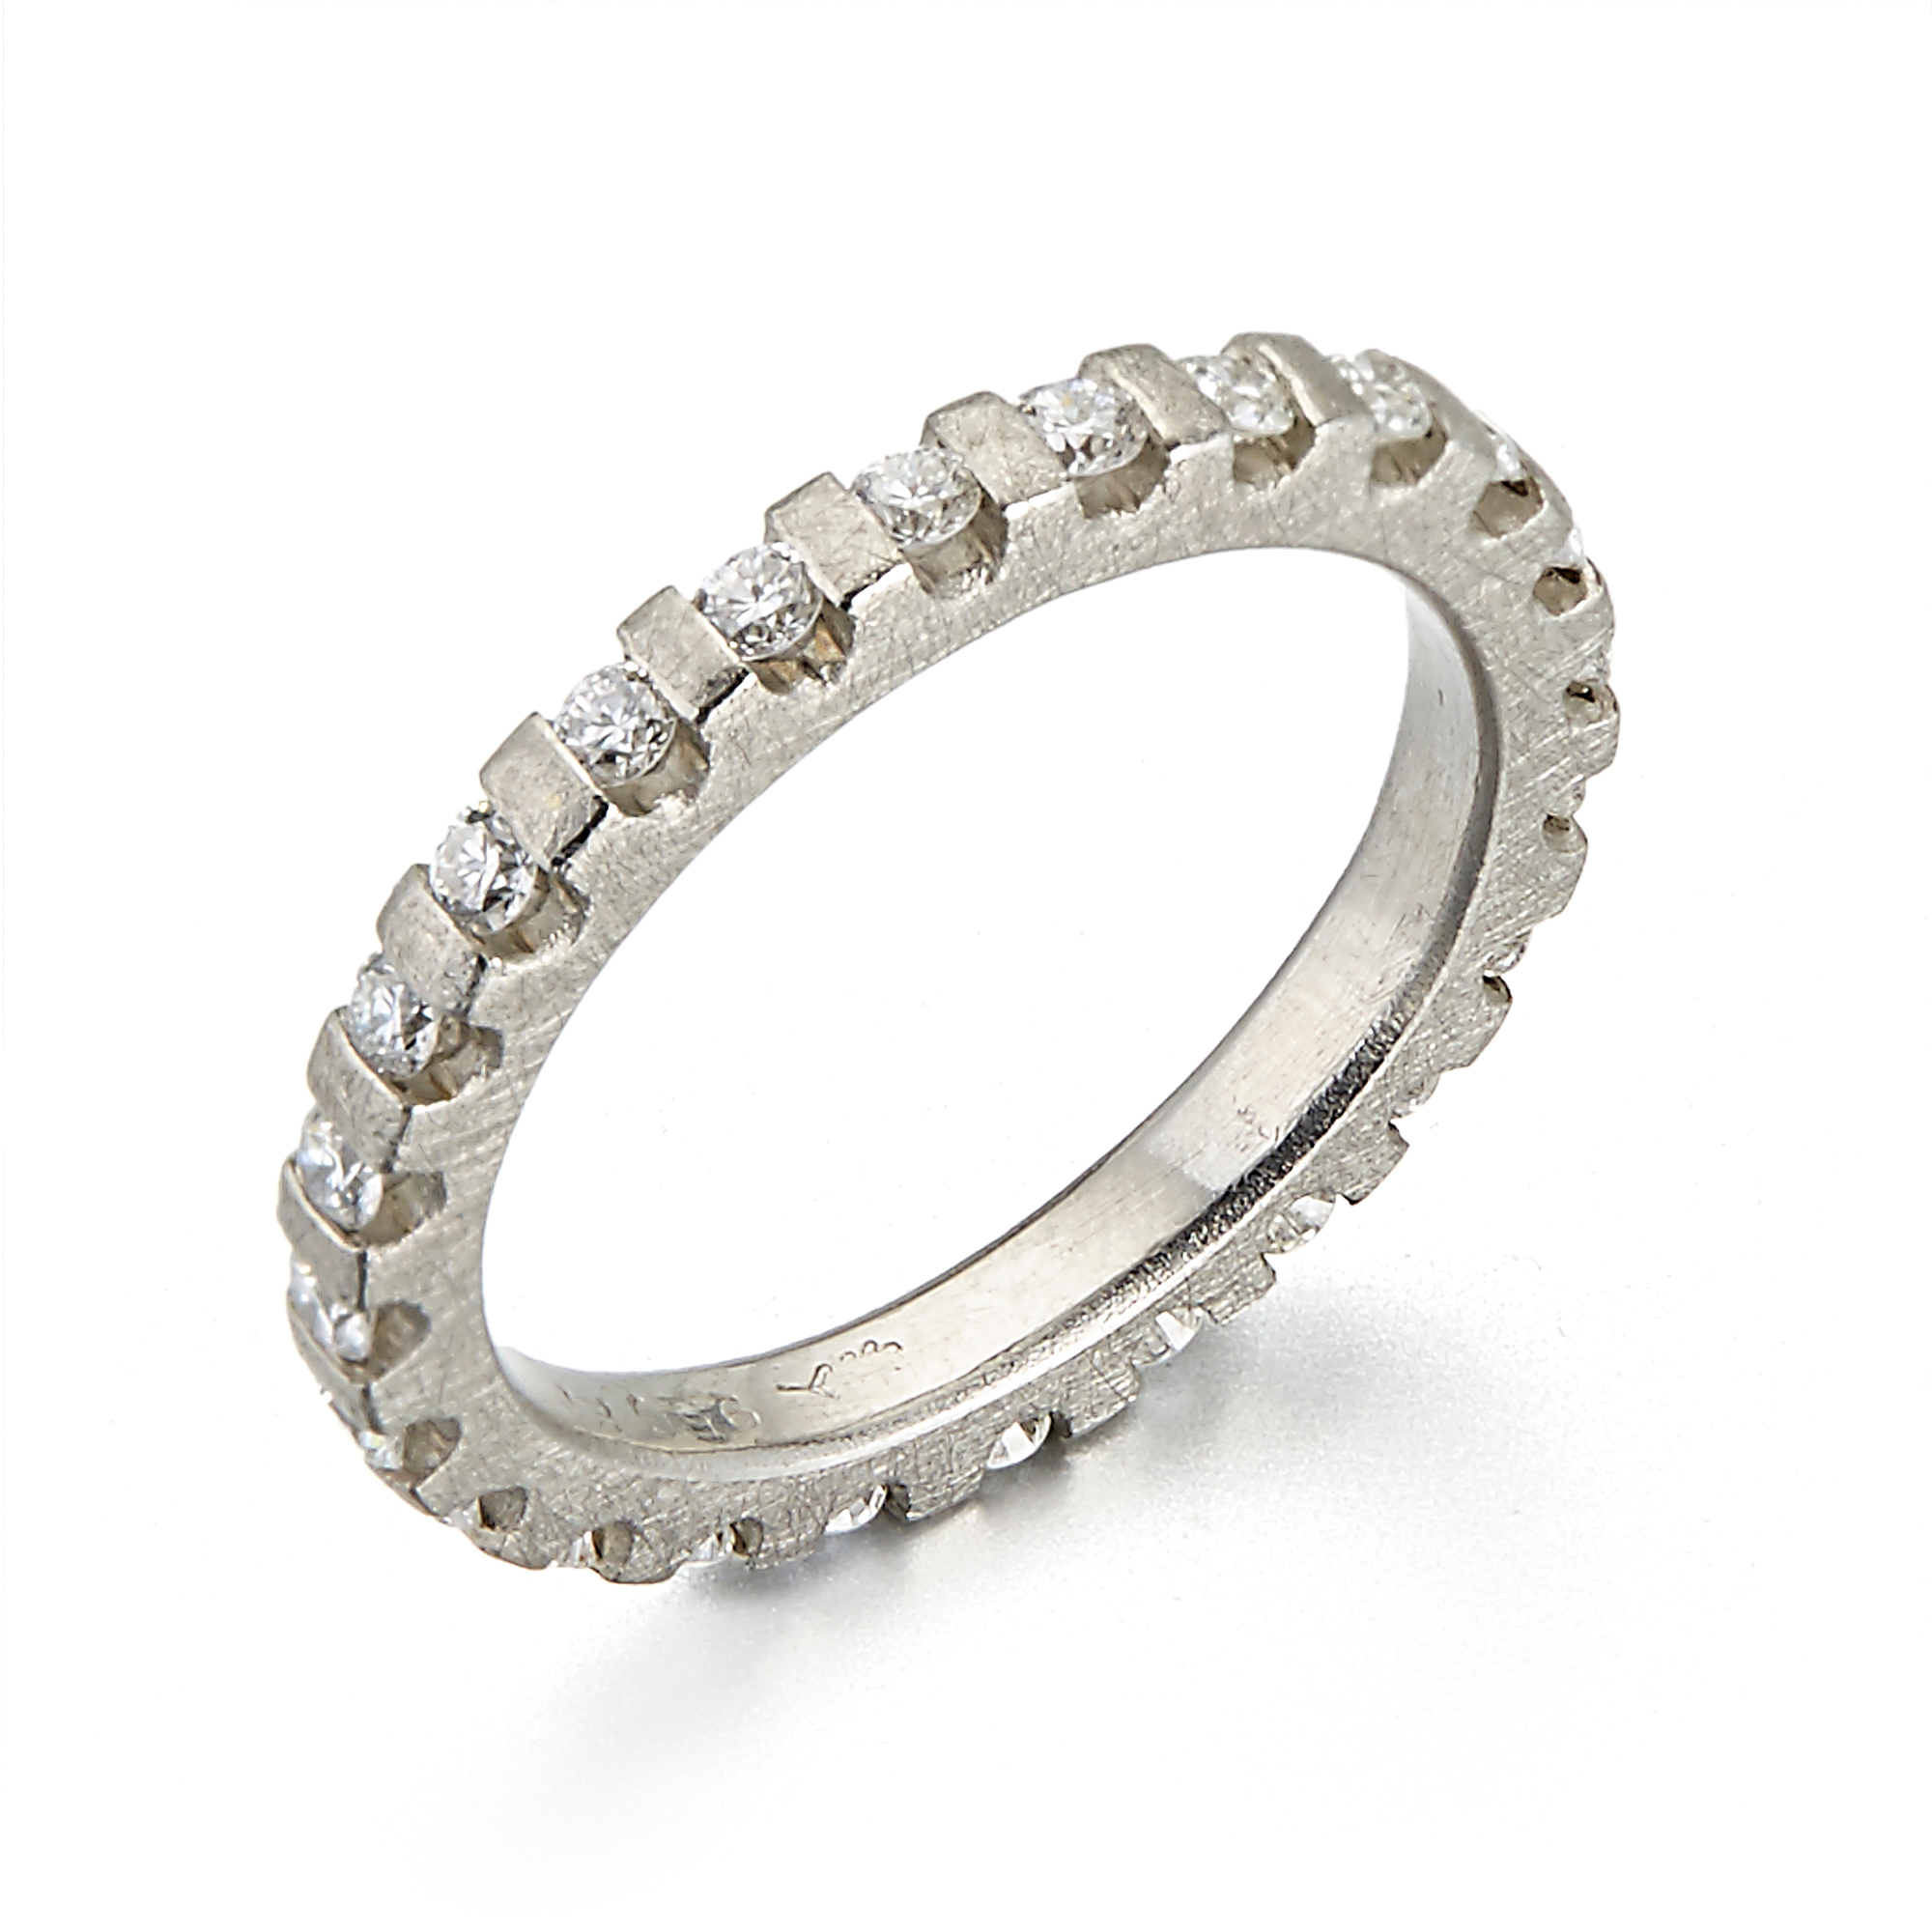 Barbara Heinrich Diamond Platinum Gear Eternity Band Ring